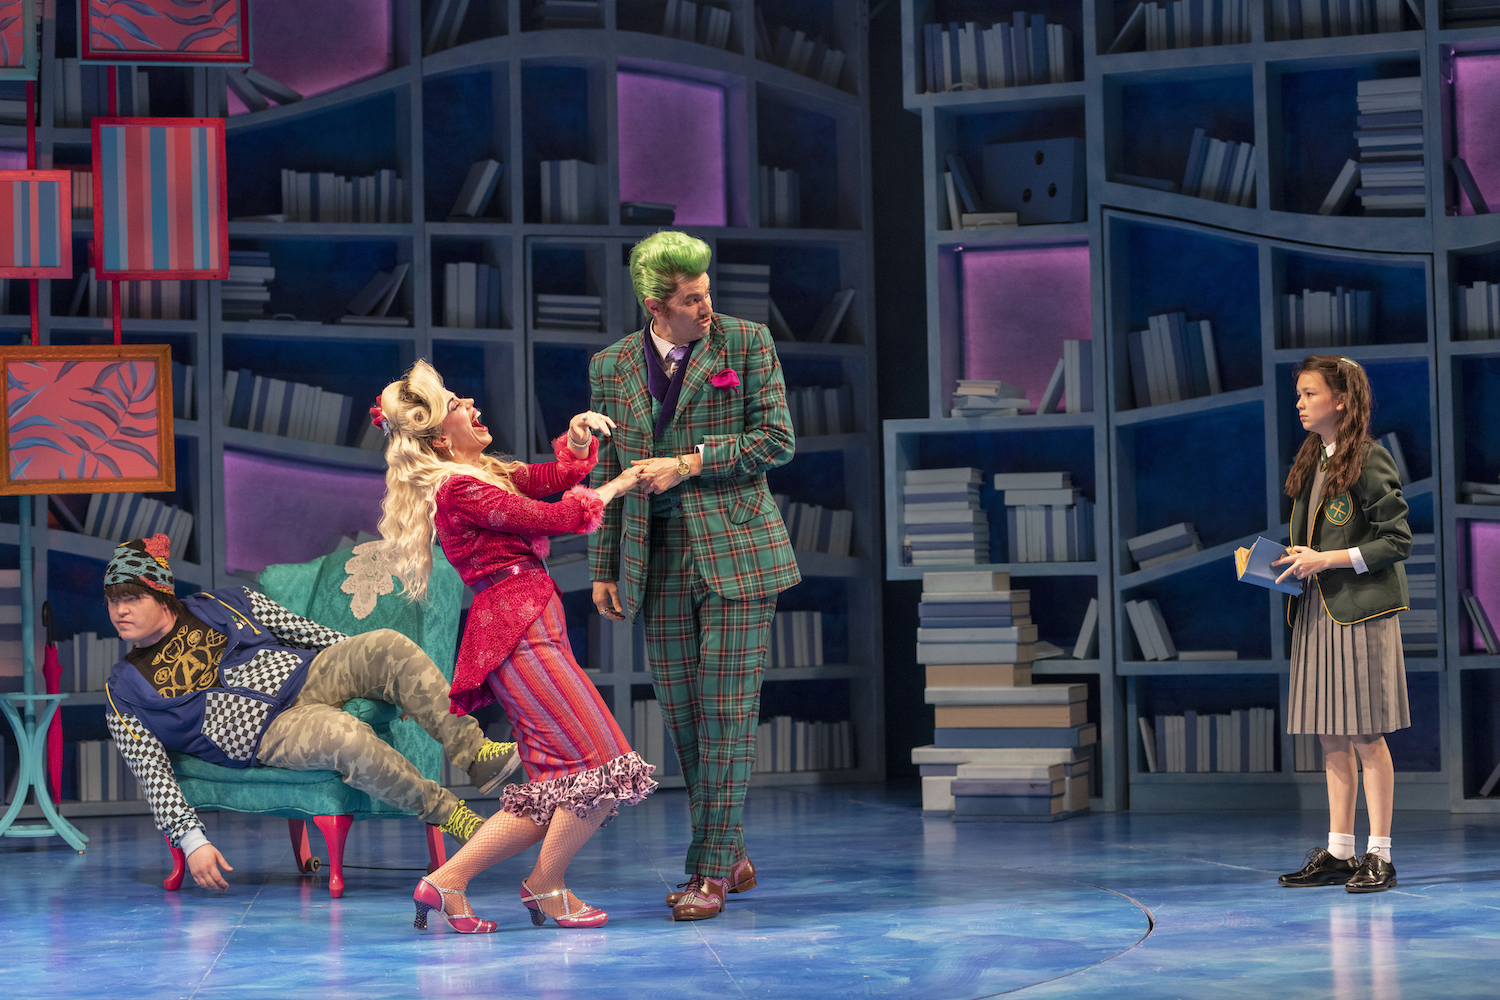 Matilda the Musical Brings Depth, Joy, and Nasty Fun to the Stanley Theatre